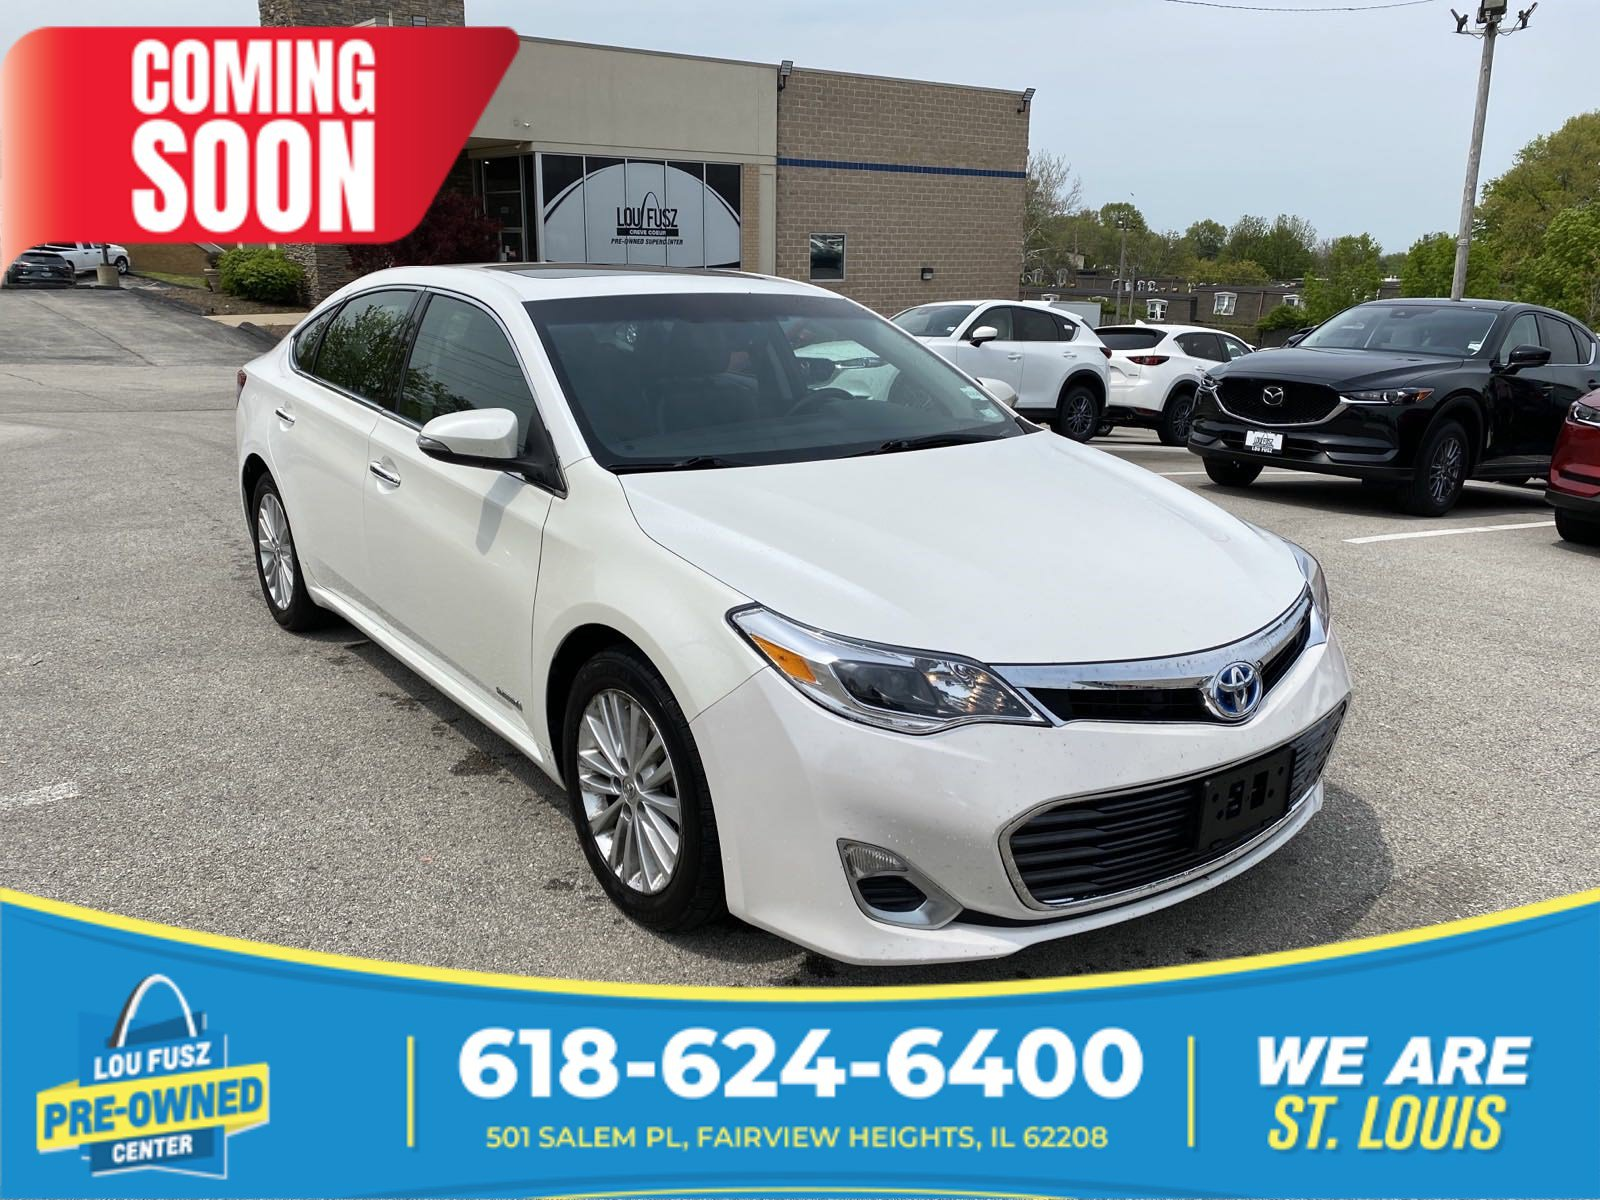 Pre-Owned 2013 Toyota Avalon Hybrid XLE Touring FWD 4dr Car